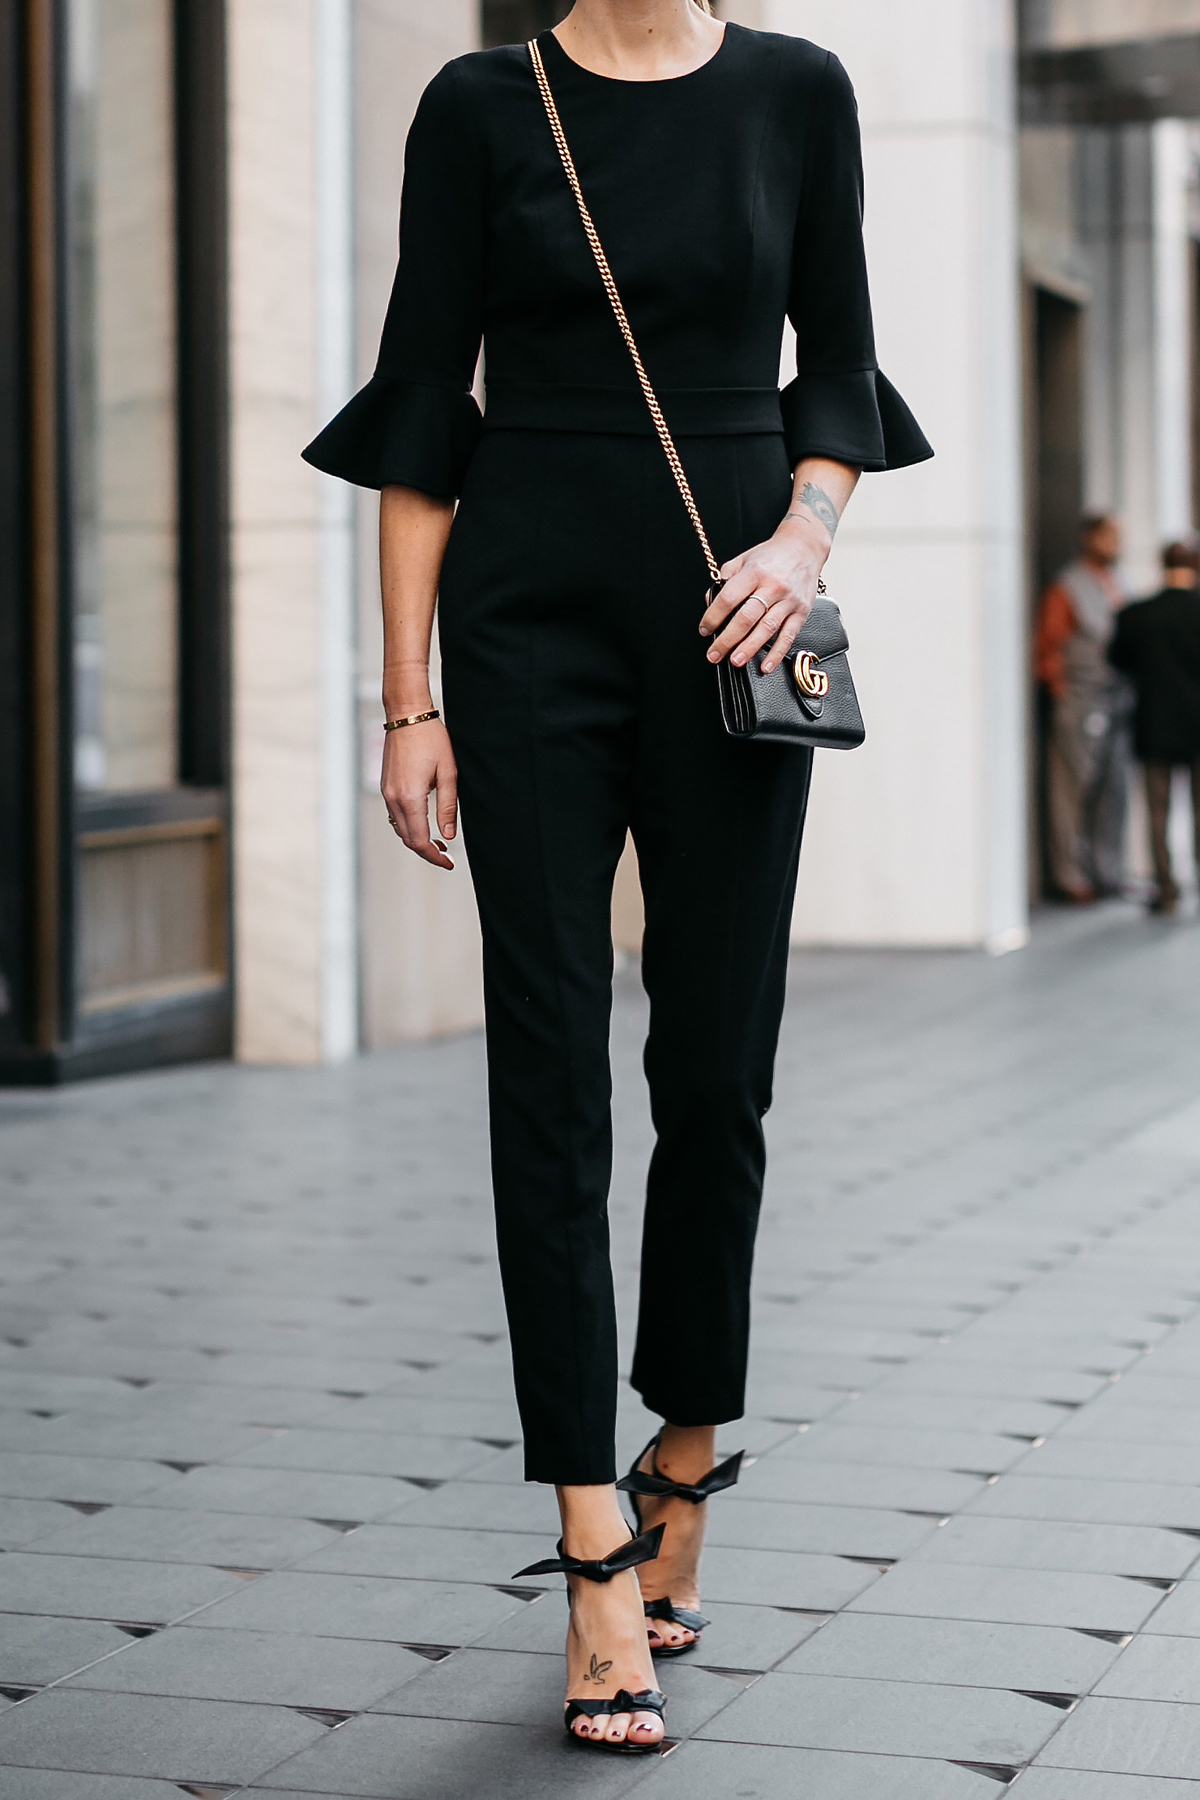 Woman Wearing Black Ruffle Sleeve Jumpsuit Gucci Marmont Black Handbag Black Bow Tie Heels Black Celine Sunglasses Fashion Jackson Dallas Blogger Fashion Blogger Street Style